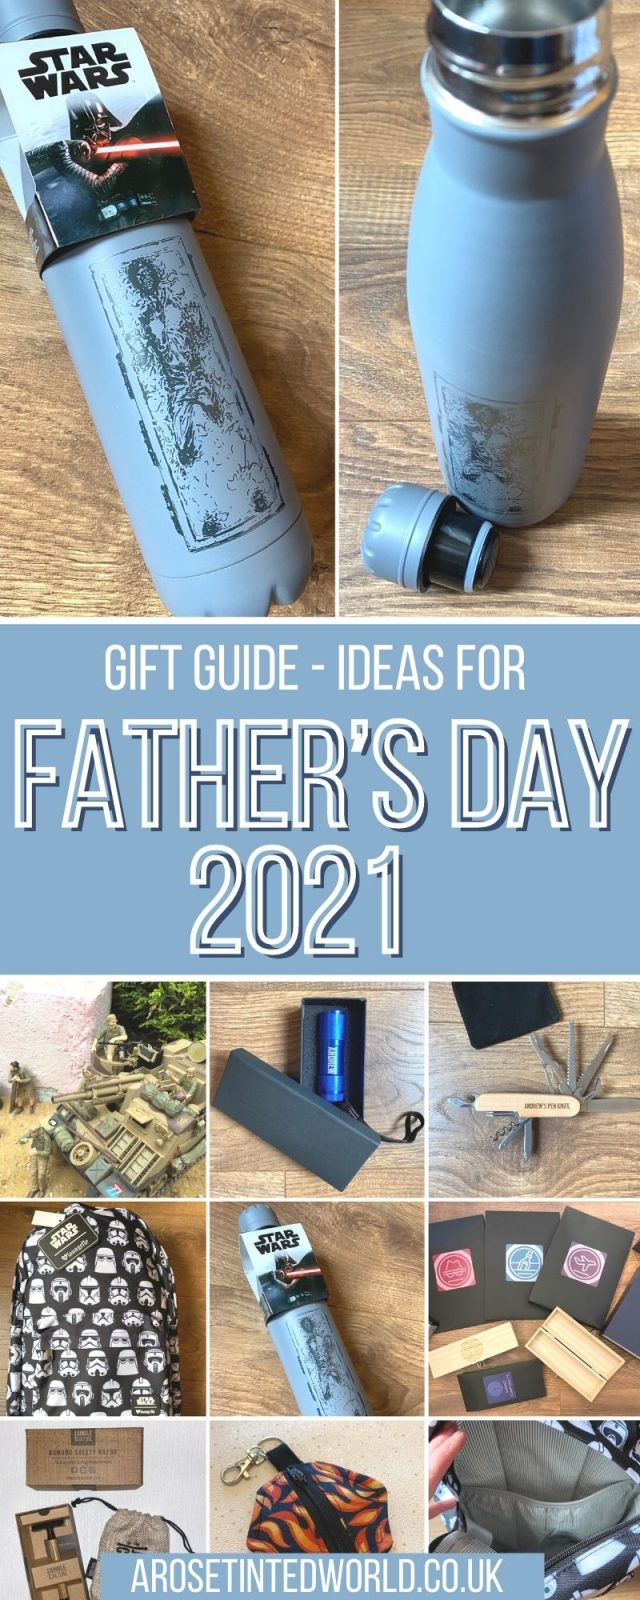 Father's Day Gift Guide 2021. Looking for an ideal present for your partner, father or special man in your life? Here are my ideas.